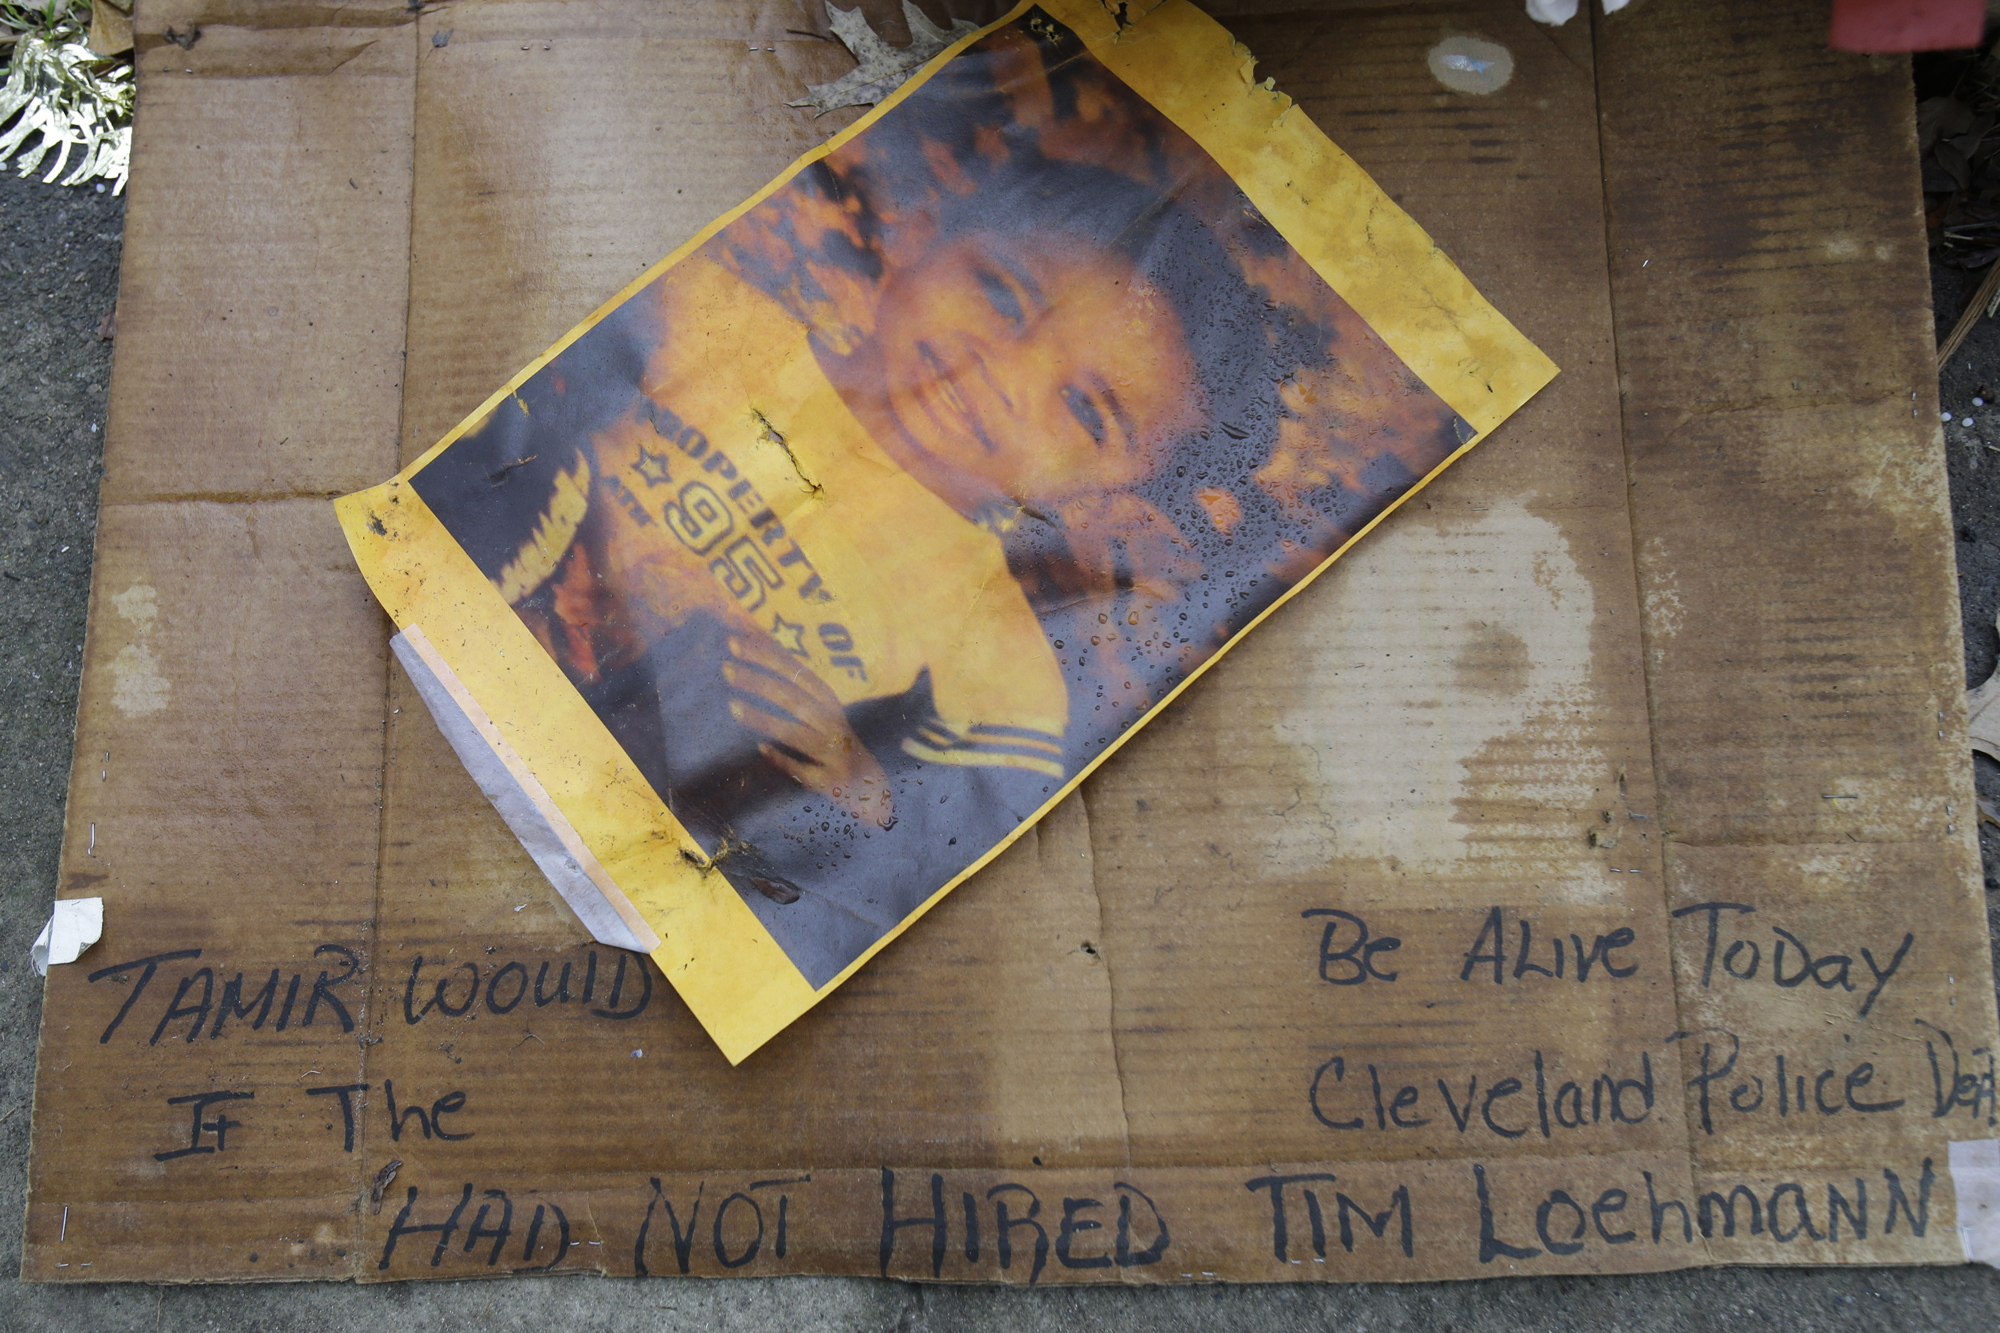 A photo of Tamir Rice rests on the ground near a memorial outside the Cudell Recreation Center, Tuesday, Dec. 29, 2015, in Cleveland. A grand jury on Monday declined to criminally indict the two officers in Tamir's killing in November 2014 at the recreation center.